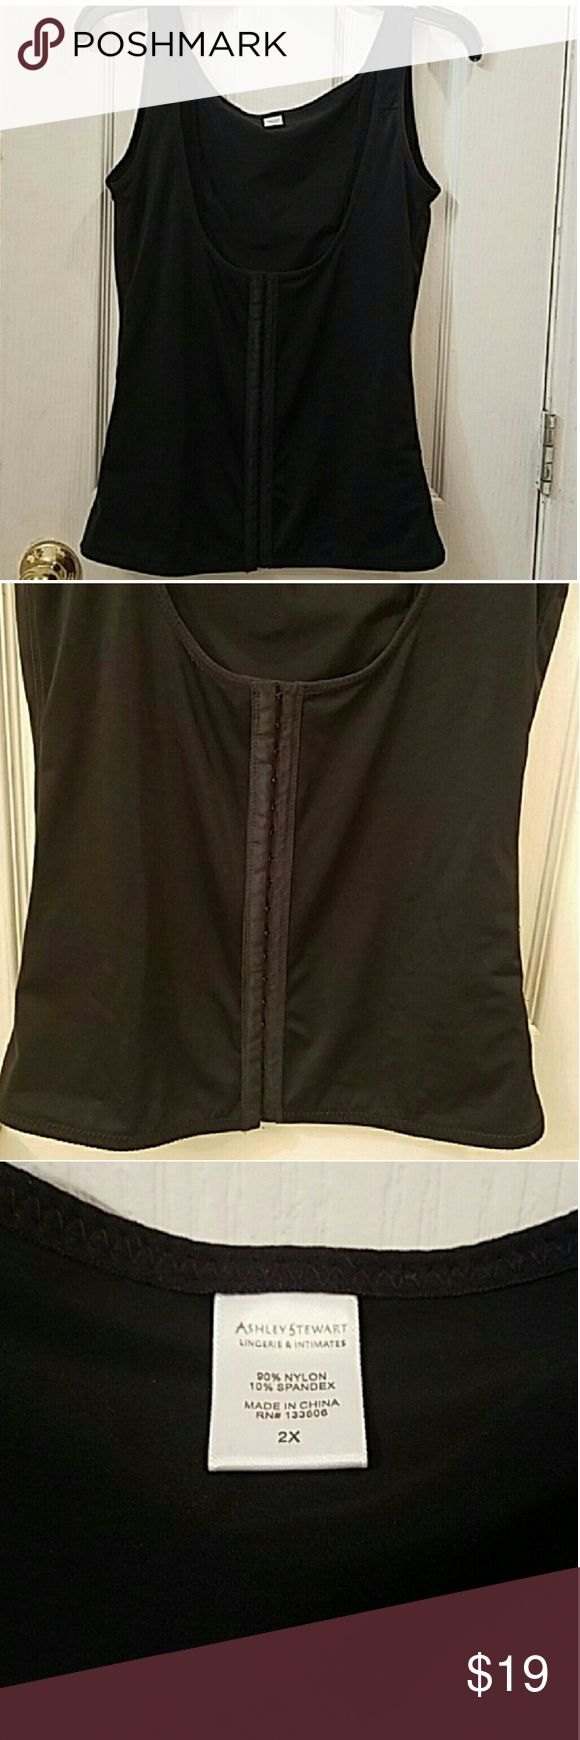 💓👀+Ashley Stewart Waist Trainer 🌹Final Price🌹Size 2x Fits a 18/20 in excellent condition I bought the wrong kind of waist trainer I was looking for something post operation. My lost you can have it for a $19 bucks plus shipping. Can be worn under a tops and dresses. without anyone noticing, people WILL notice how slim you look.👌 Has been washed and stored. Ashley Stewart Intimates & Sleepwear Shapewear